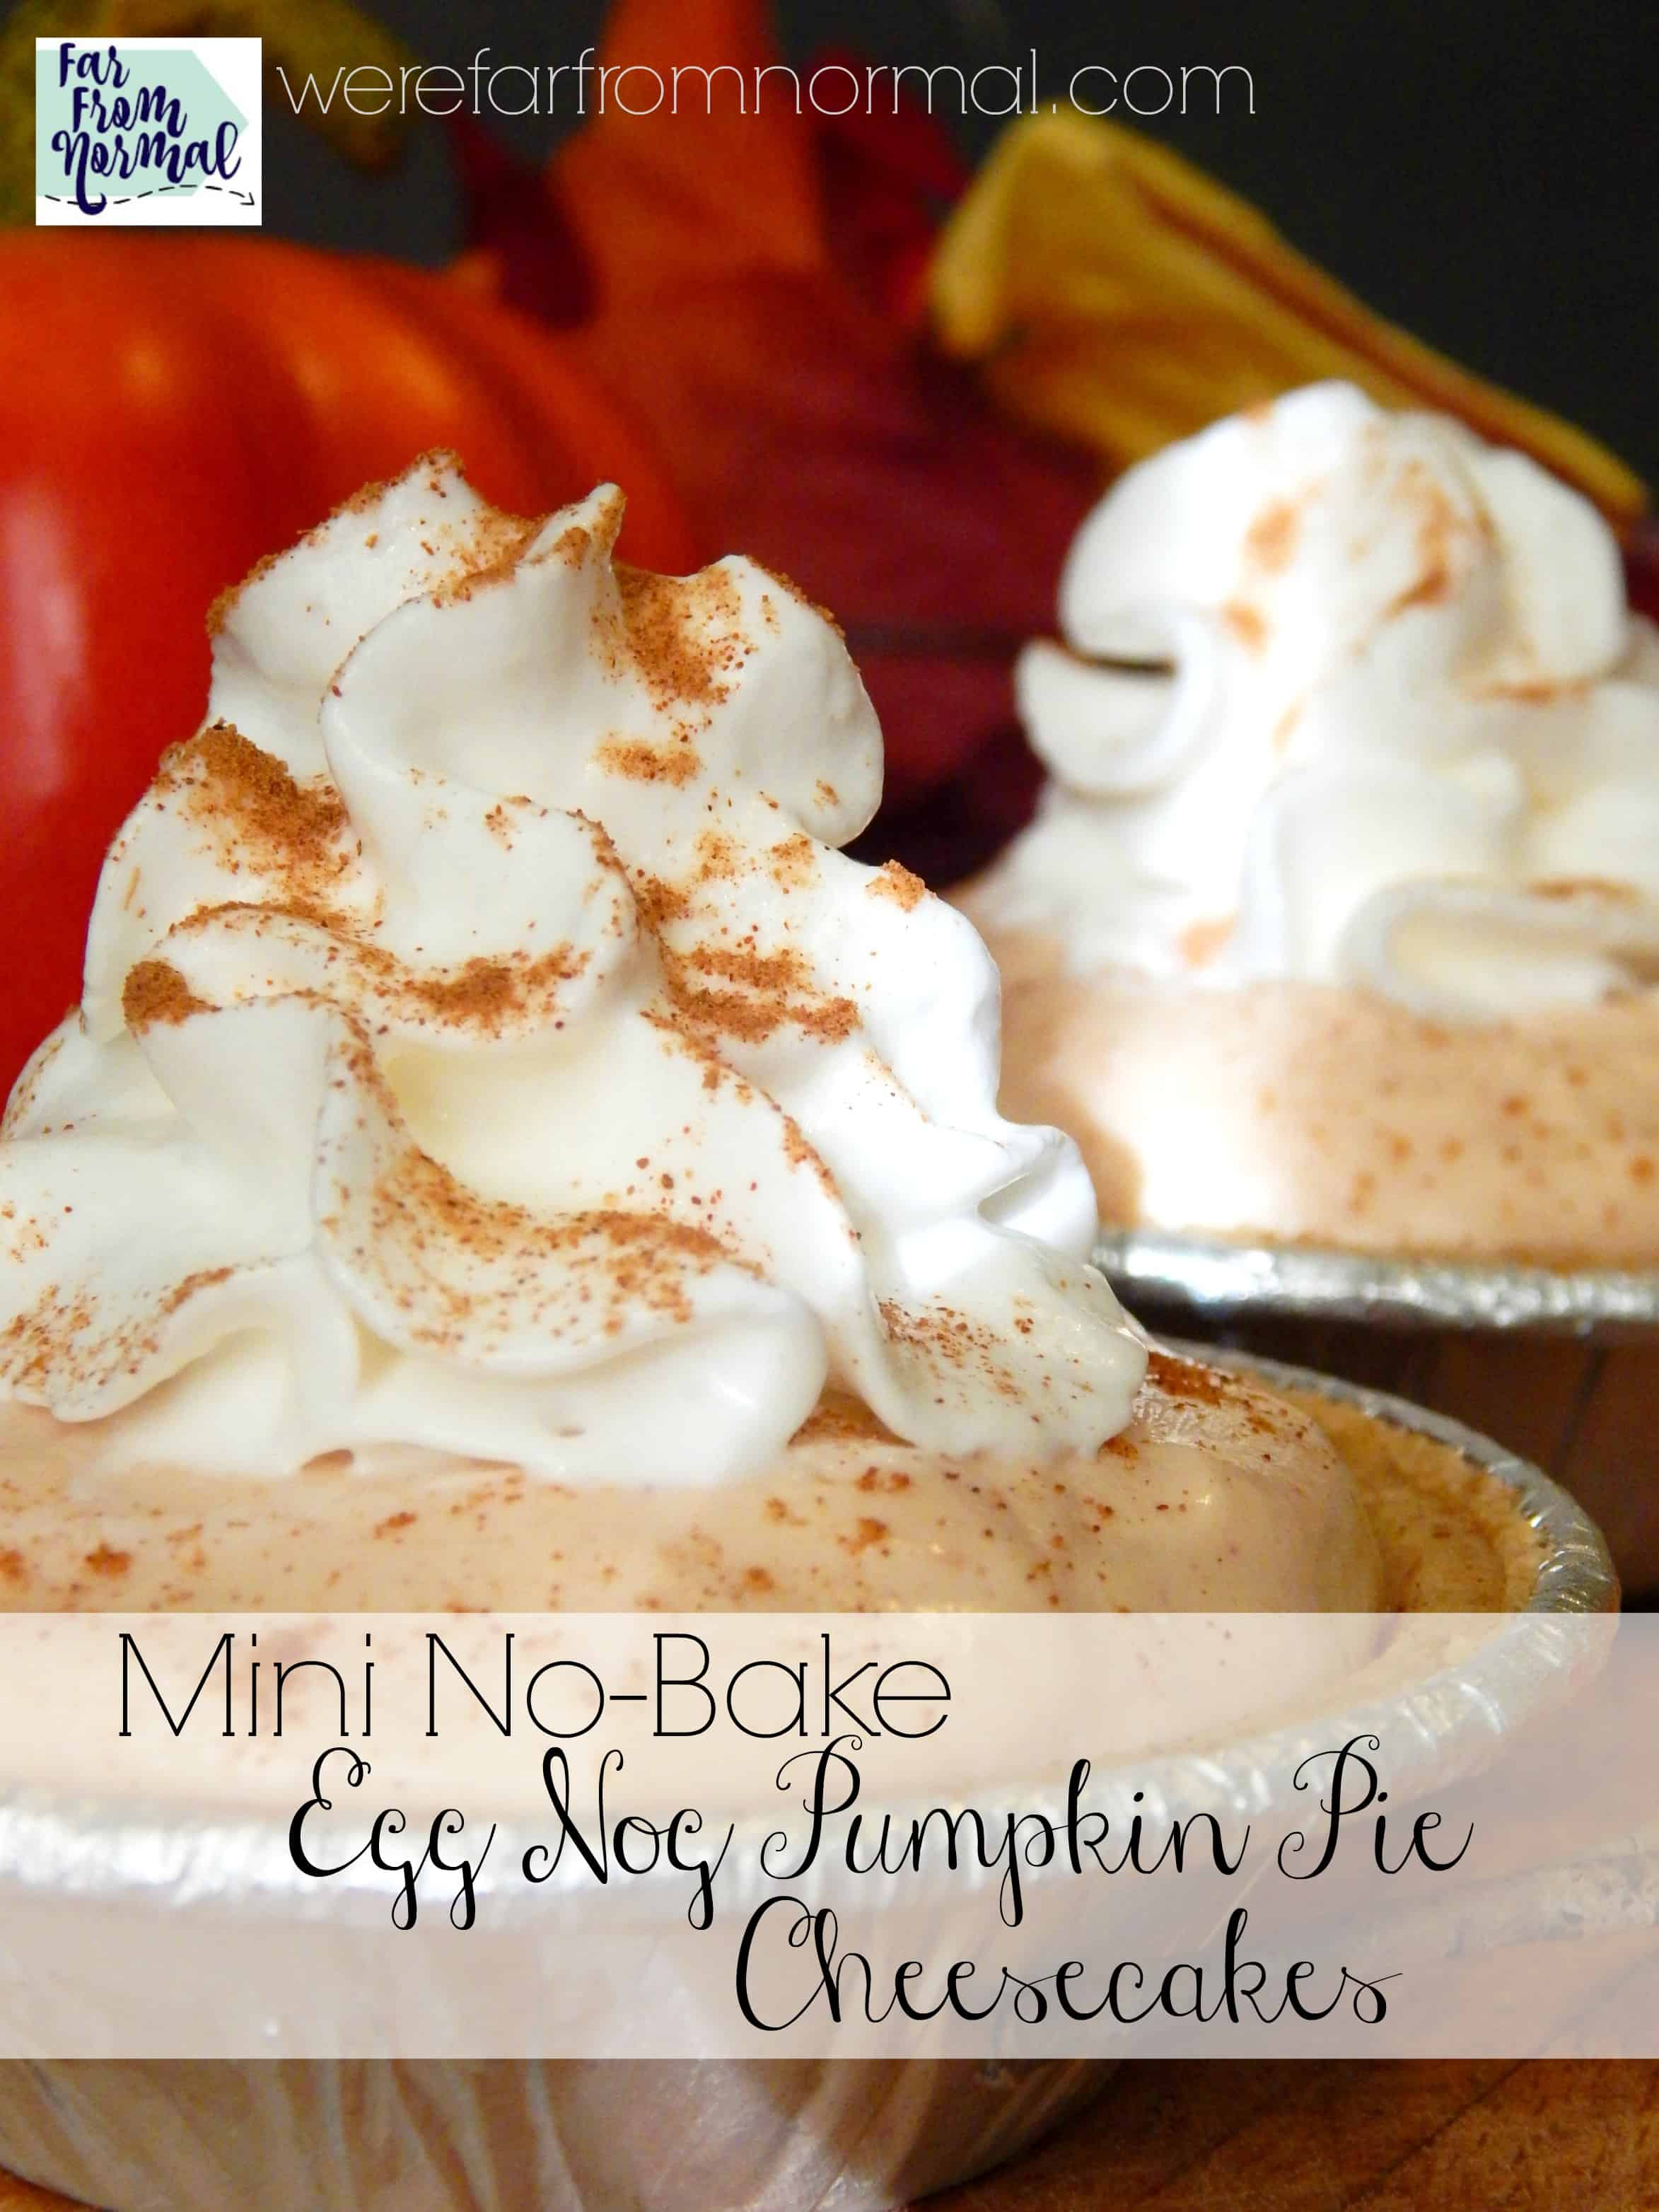 Mini No-Bake Eggnog Pumpkin Pie Cheesecakes | Far From Normal